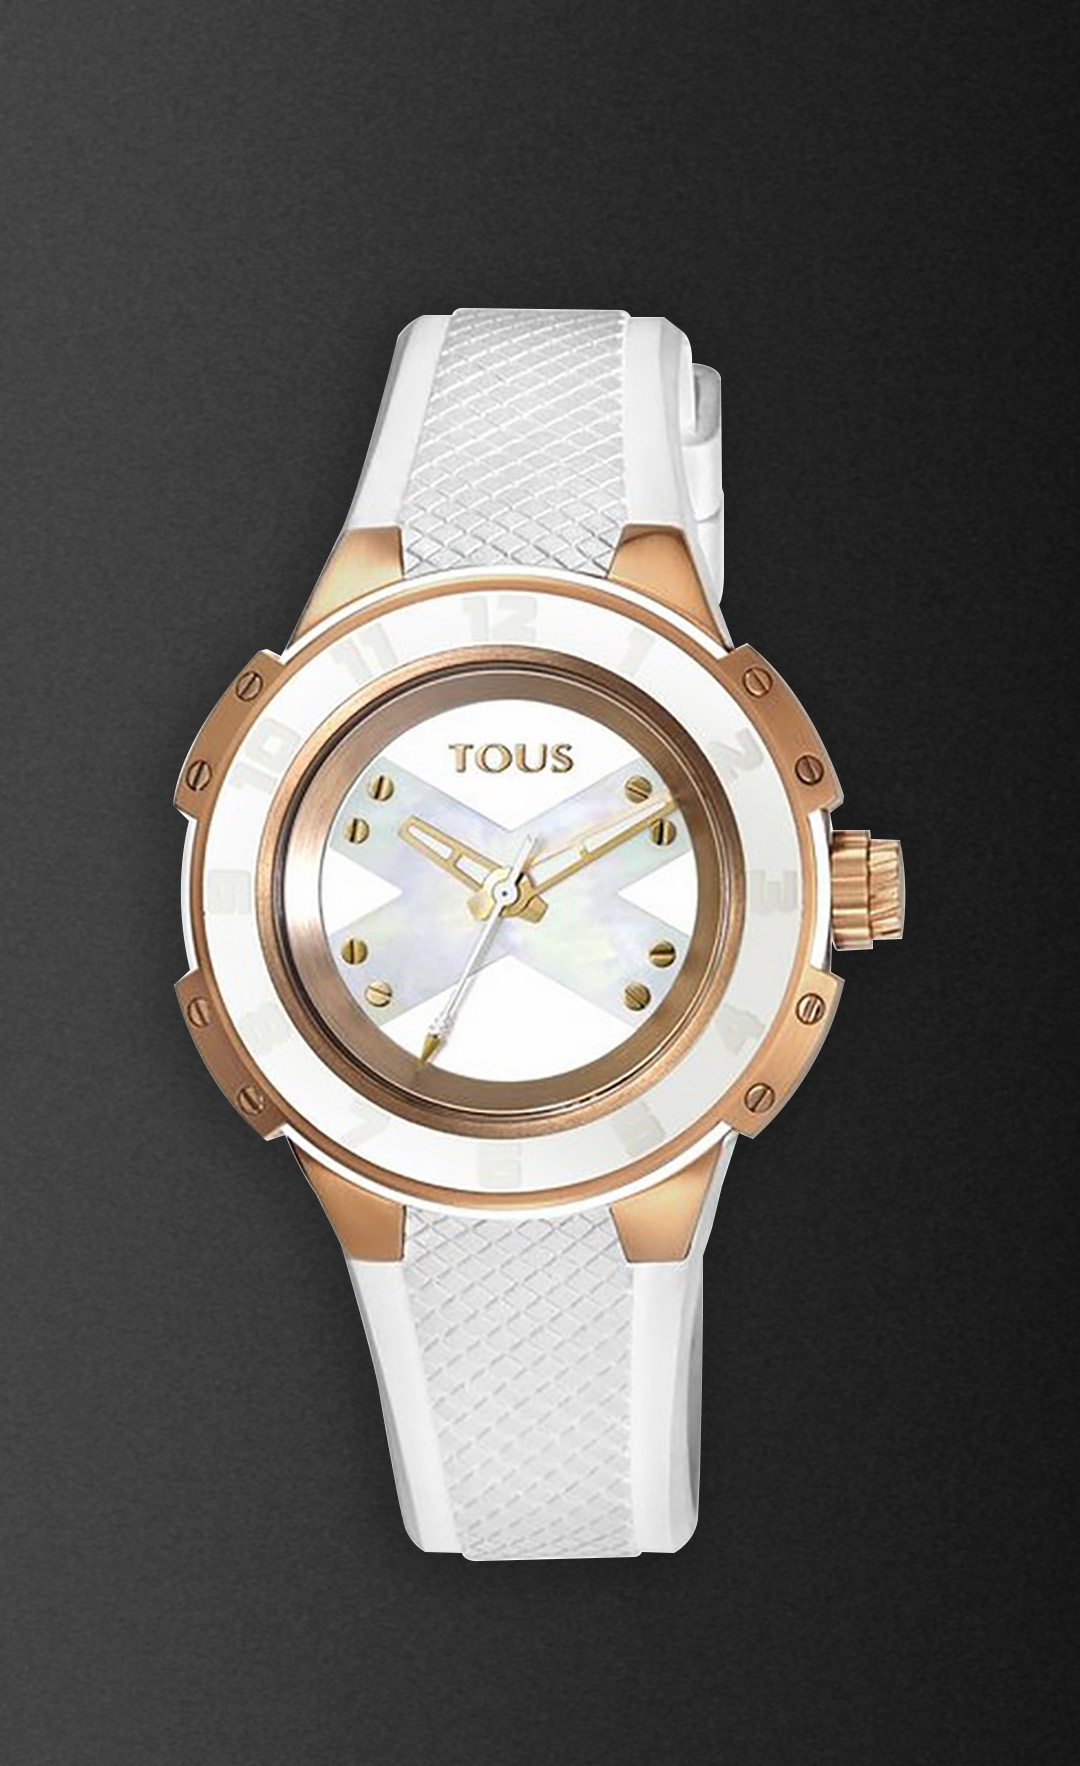 watch design Front view of the X-Tous lady watch